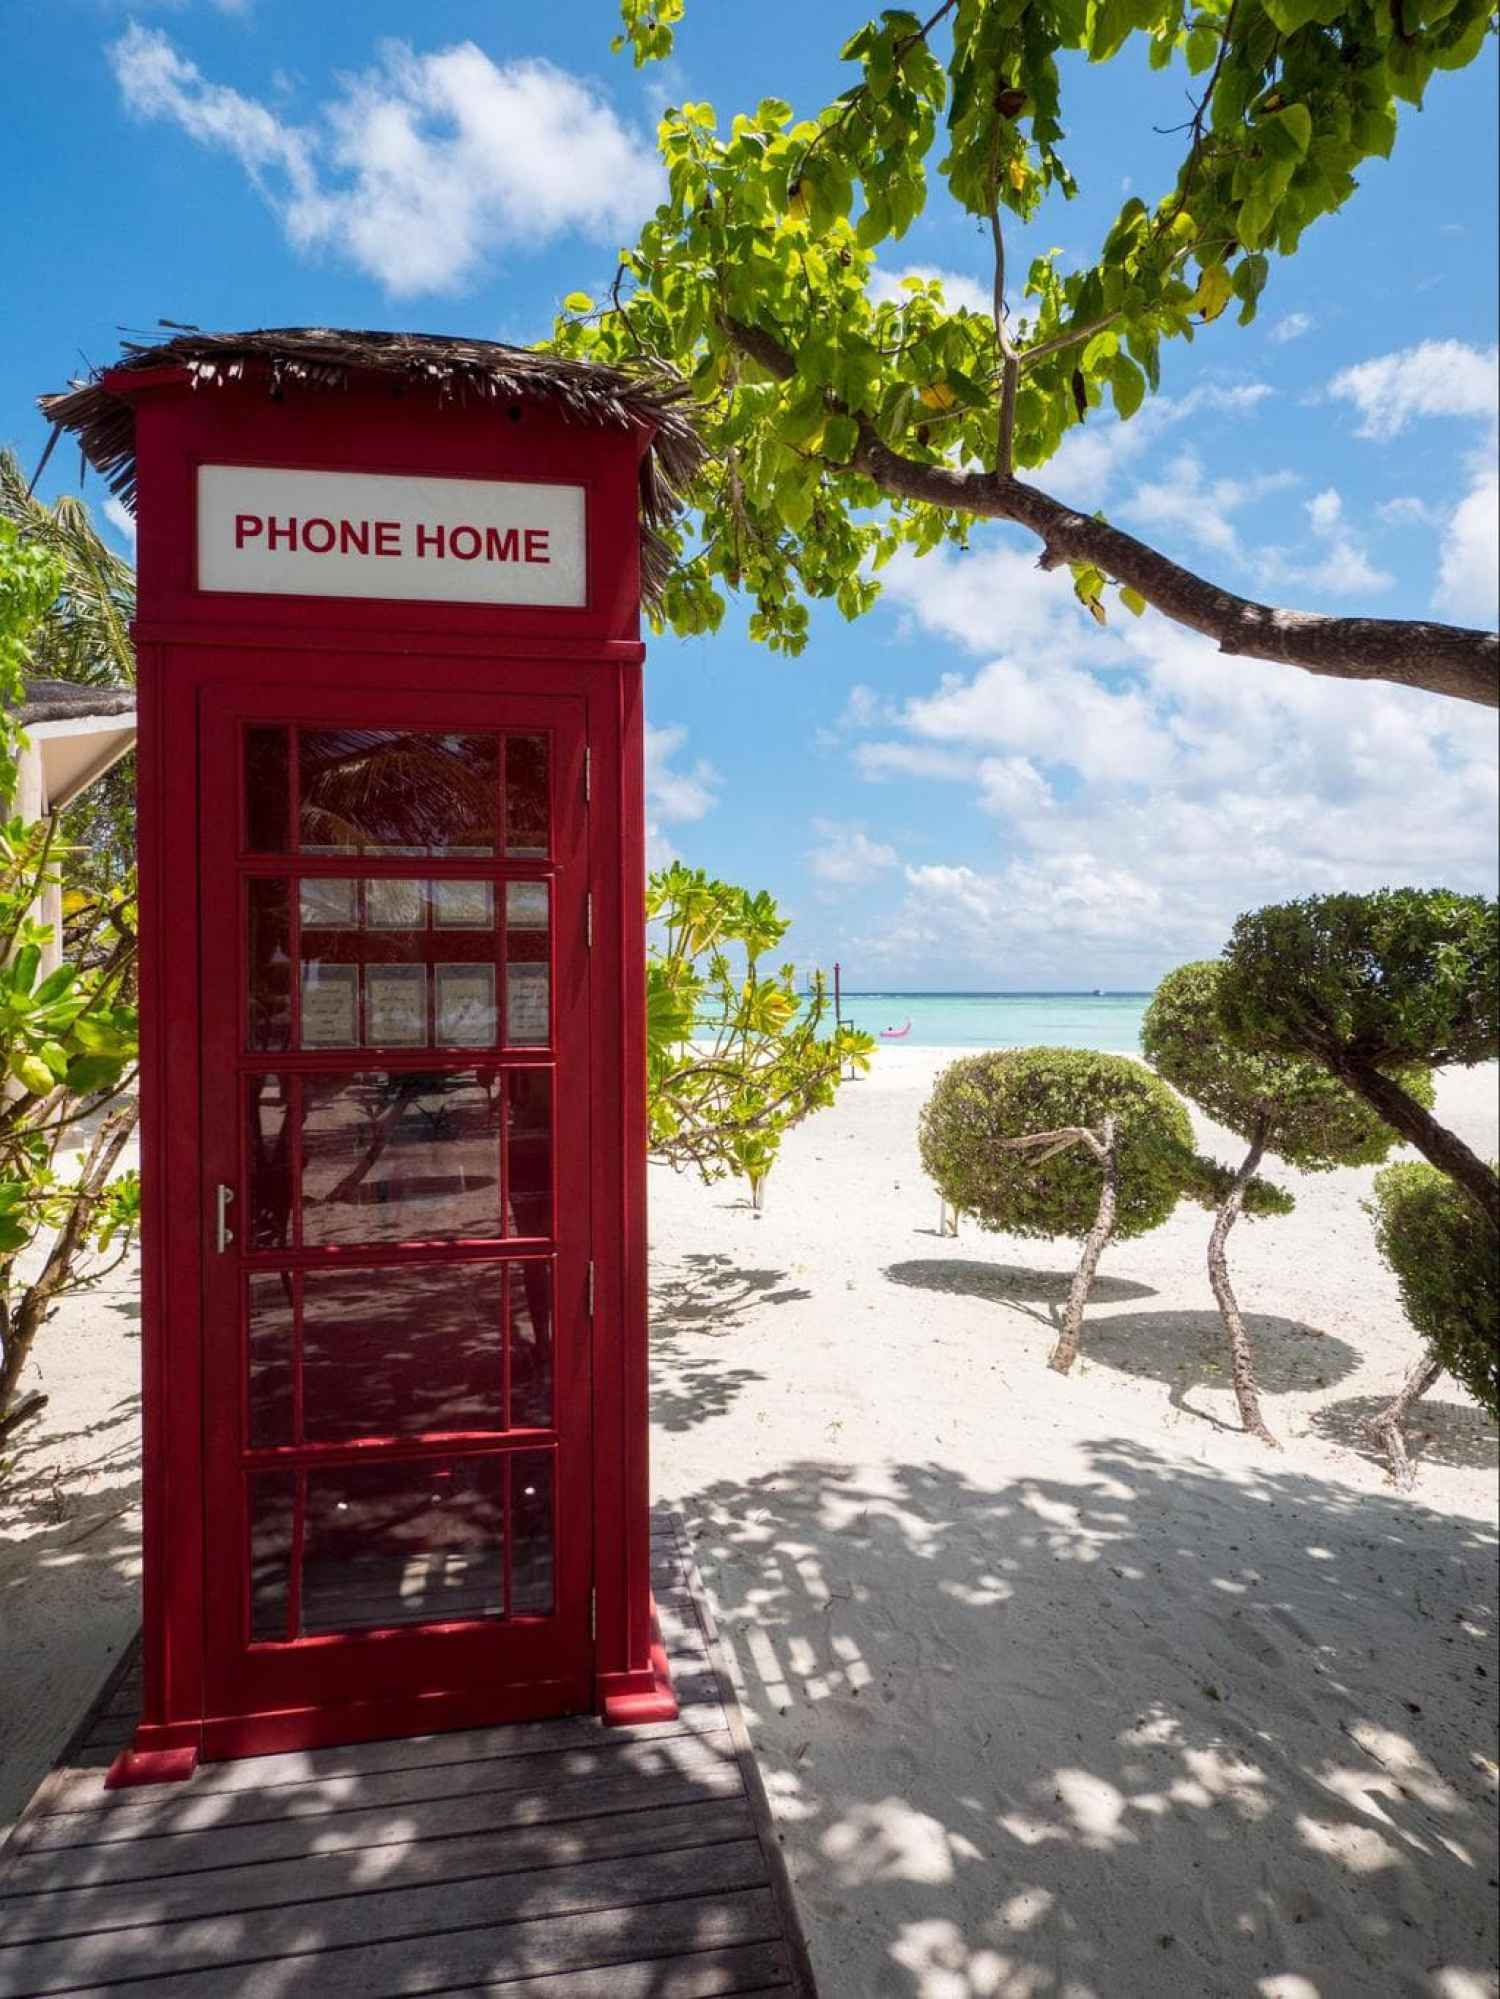 Phone booth to call home at LUX*